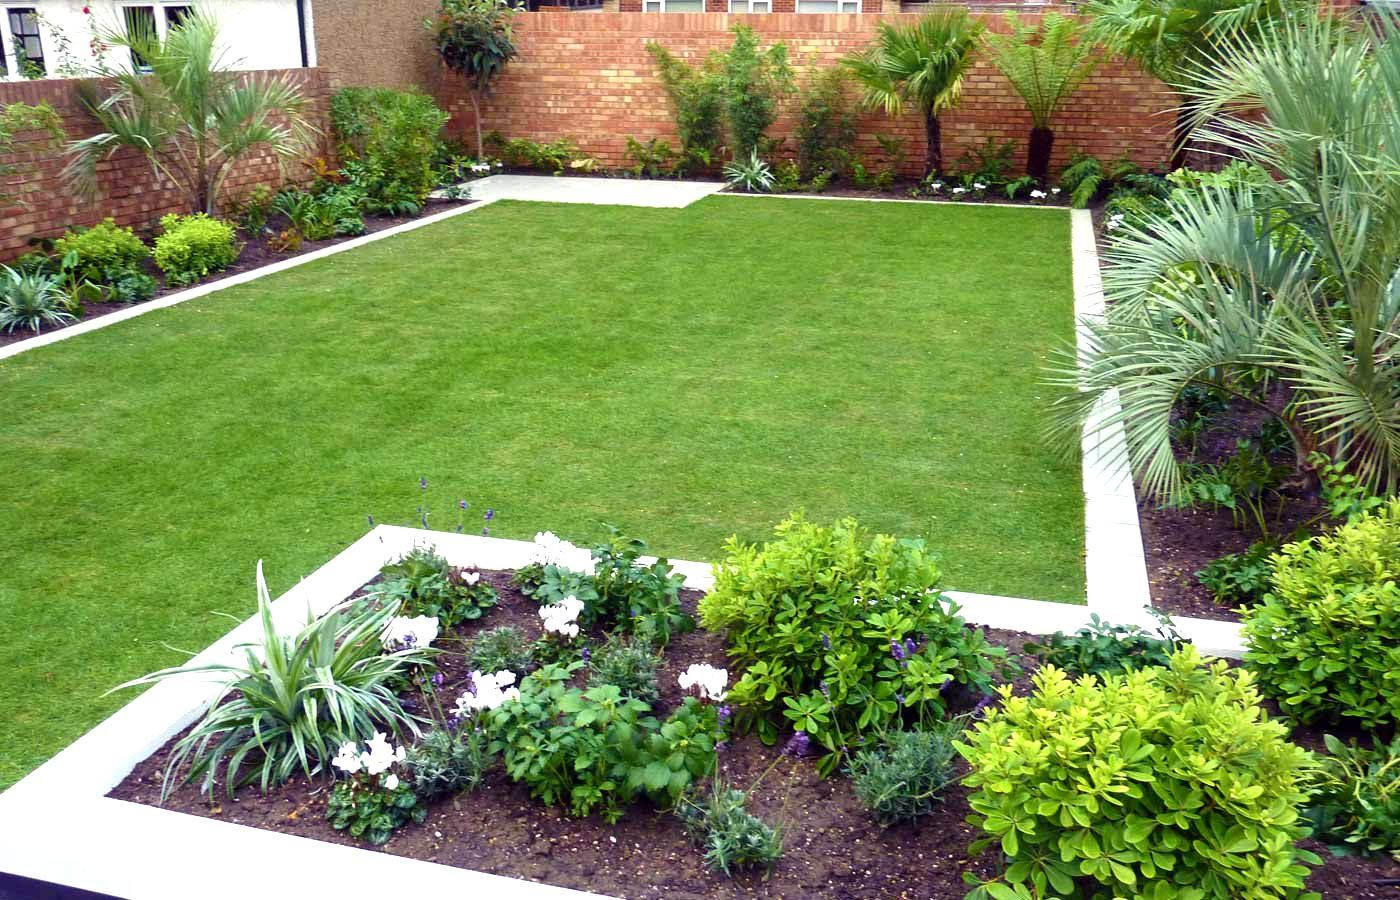 Simple garden designs no fret small garden design for Garden design ideas photos